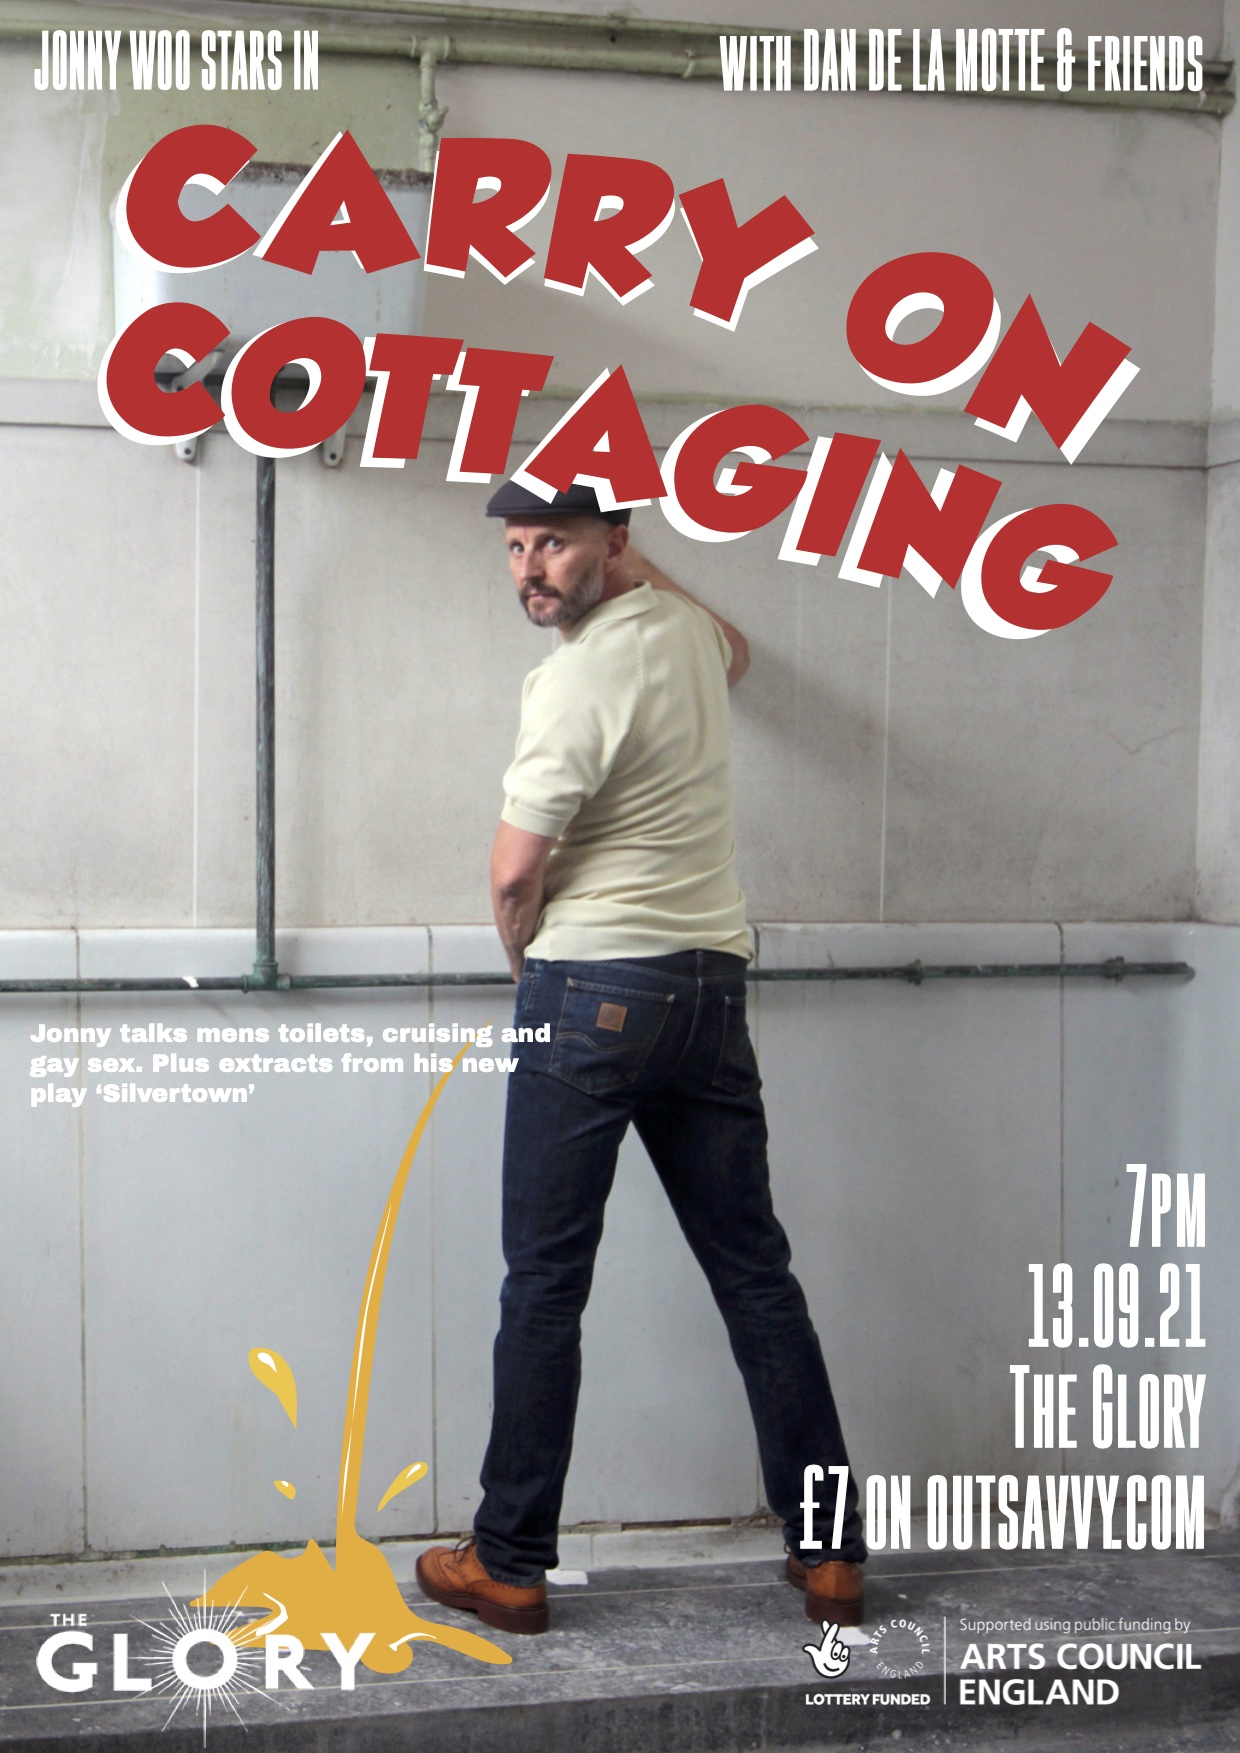 carry on cottaging the glory